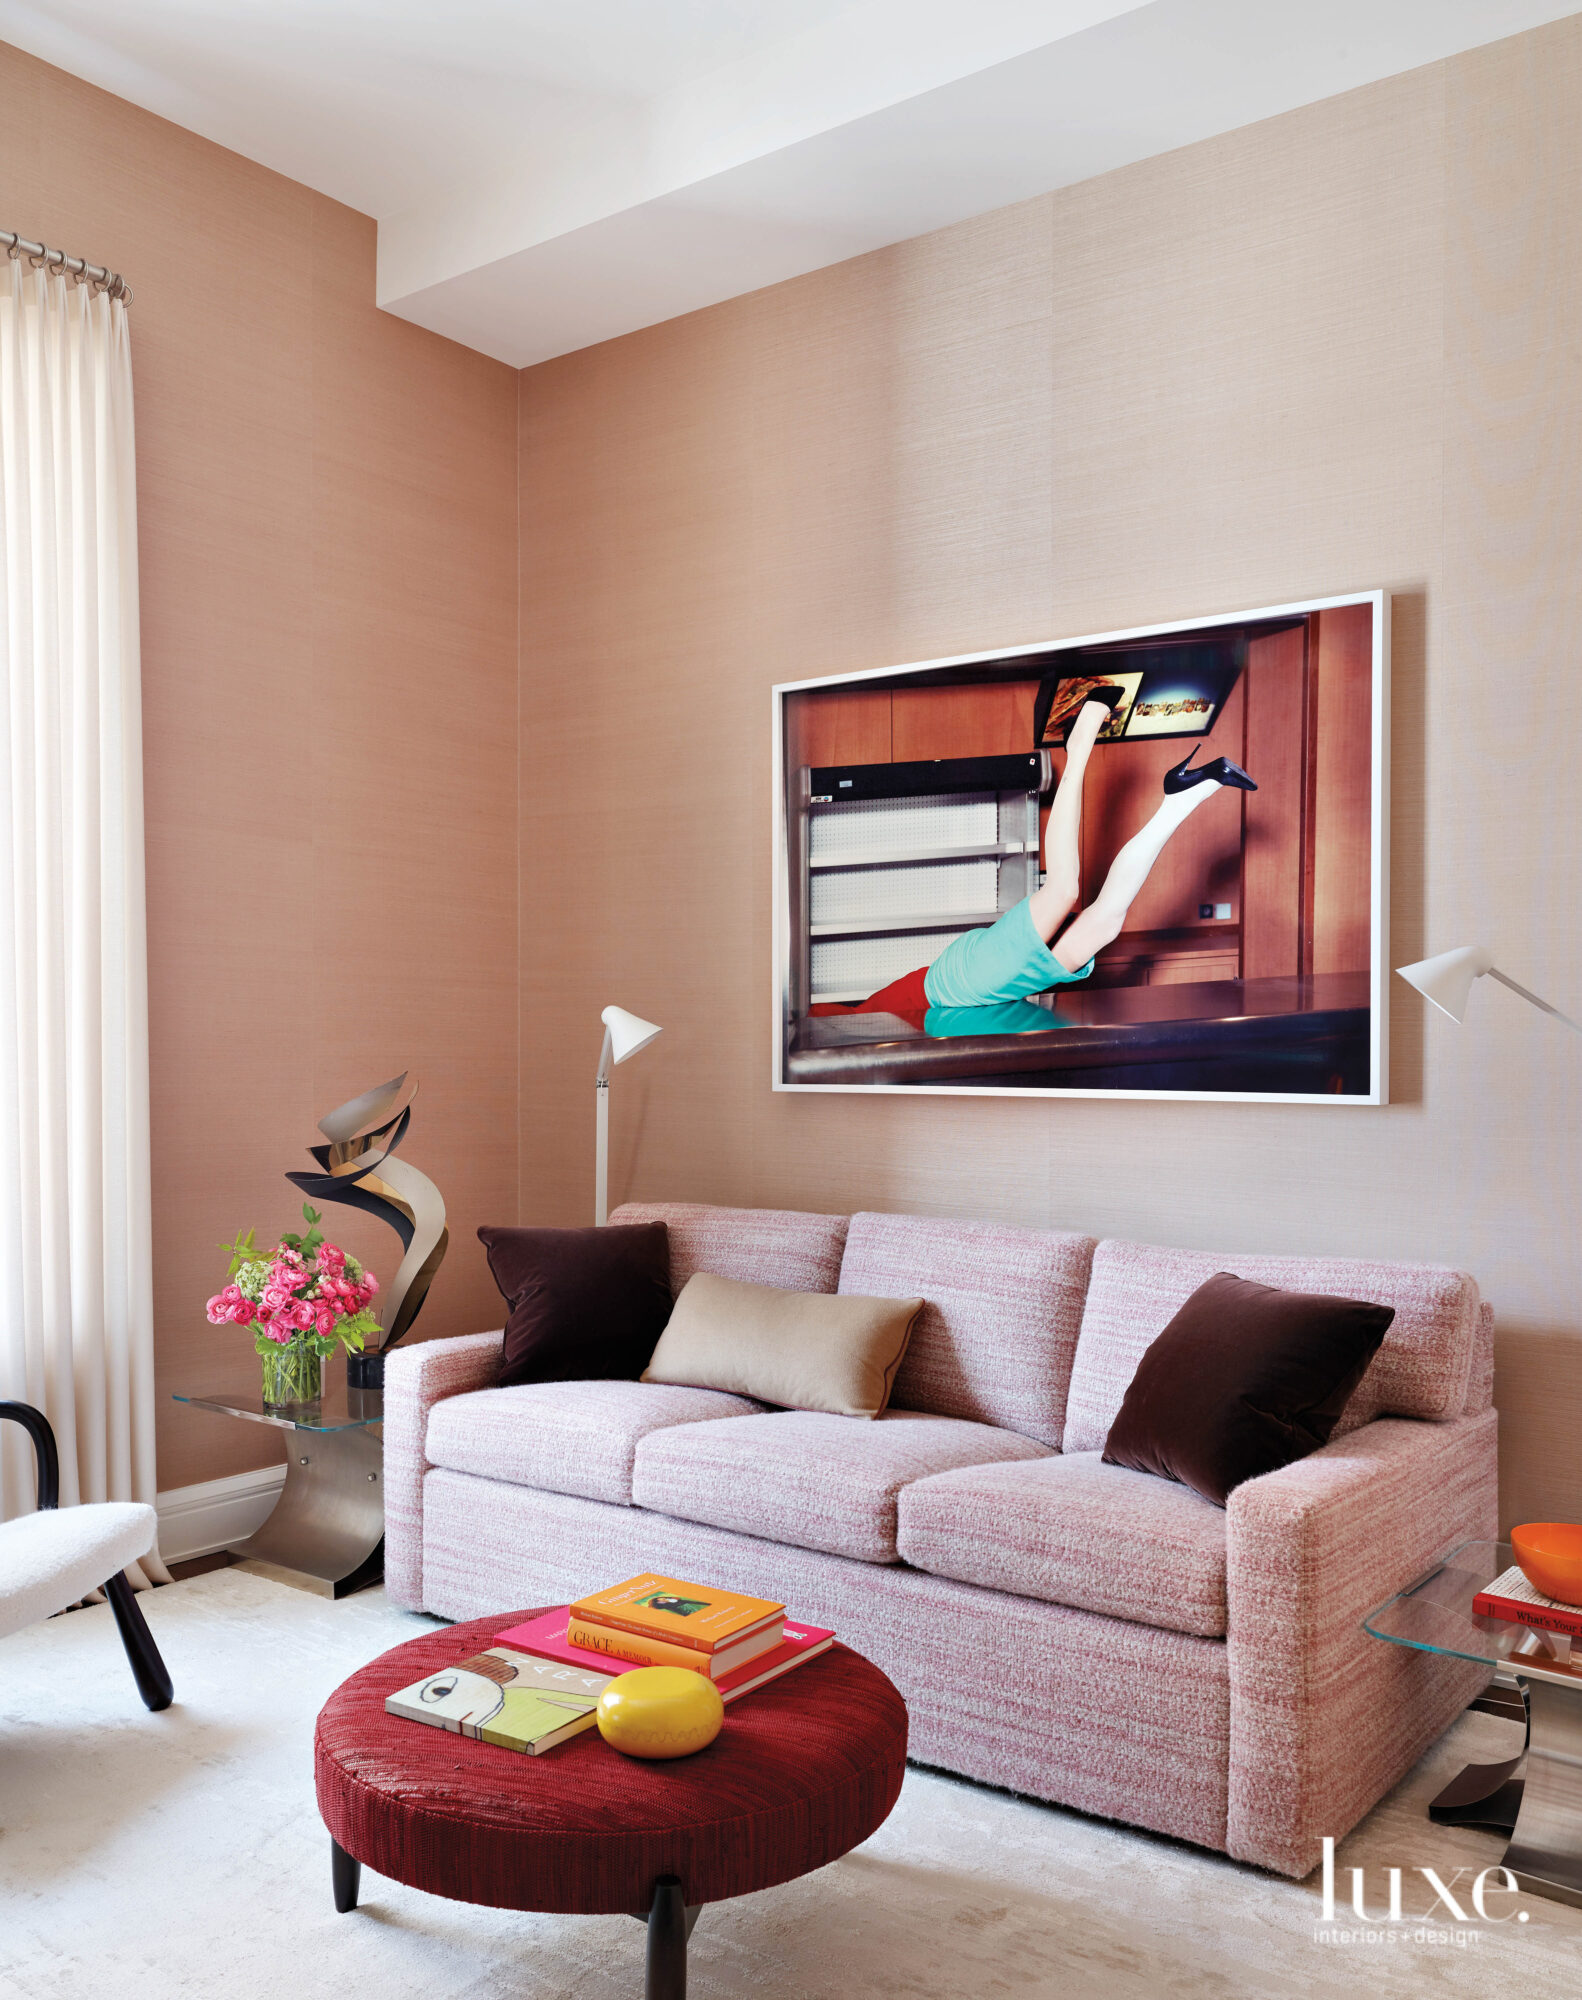 The color pink takes center stage as the sofa and wall color in this office space